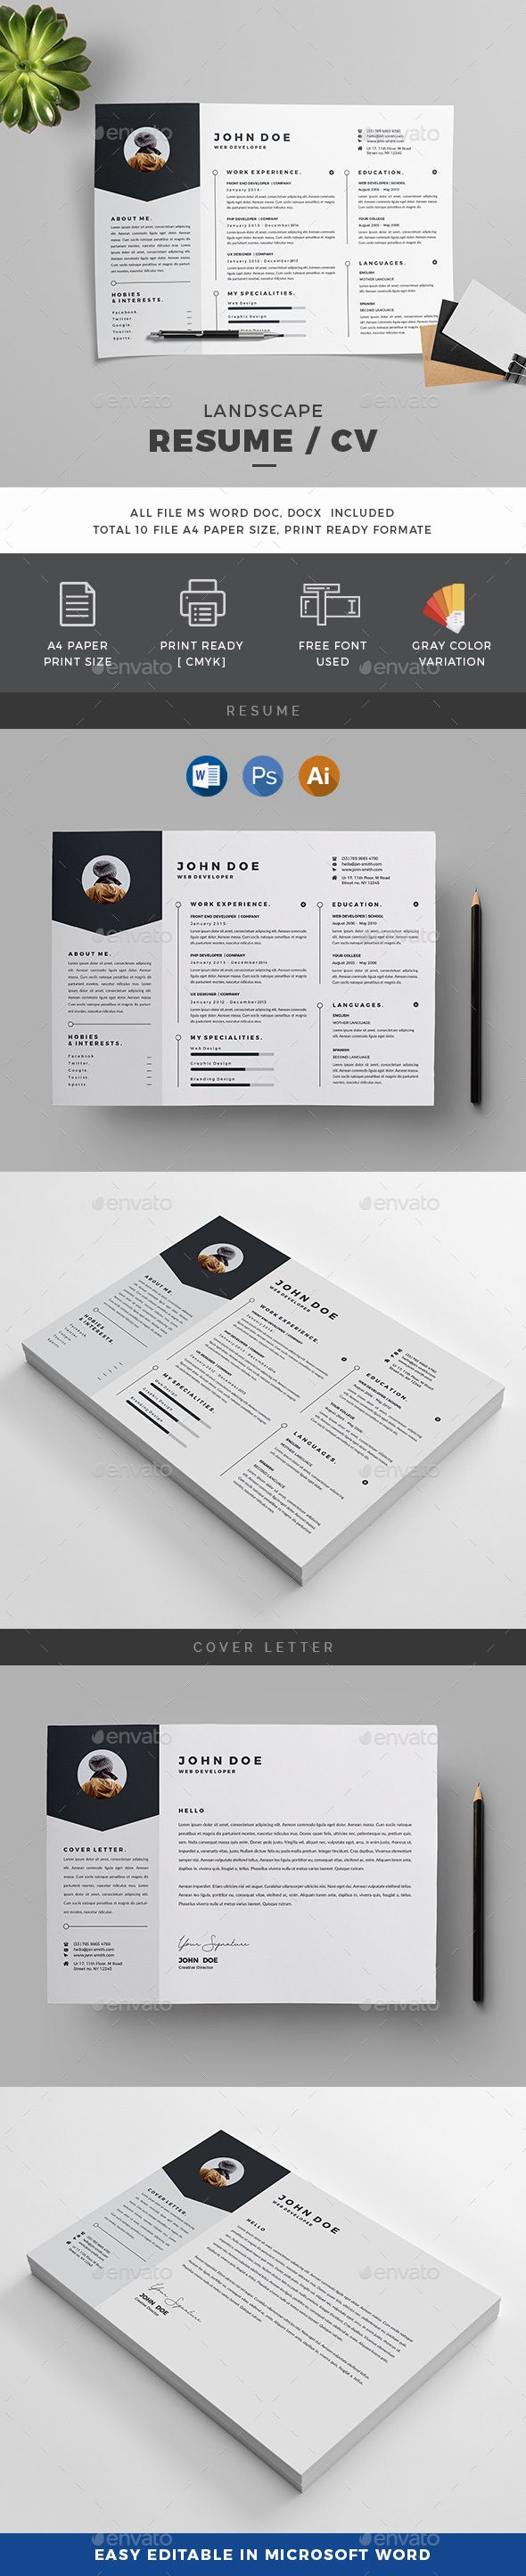 10 best Horizontal resume images on Pinterest | Resume design ...